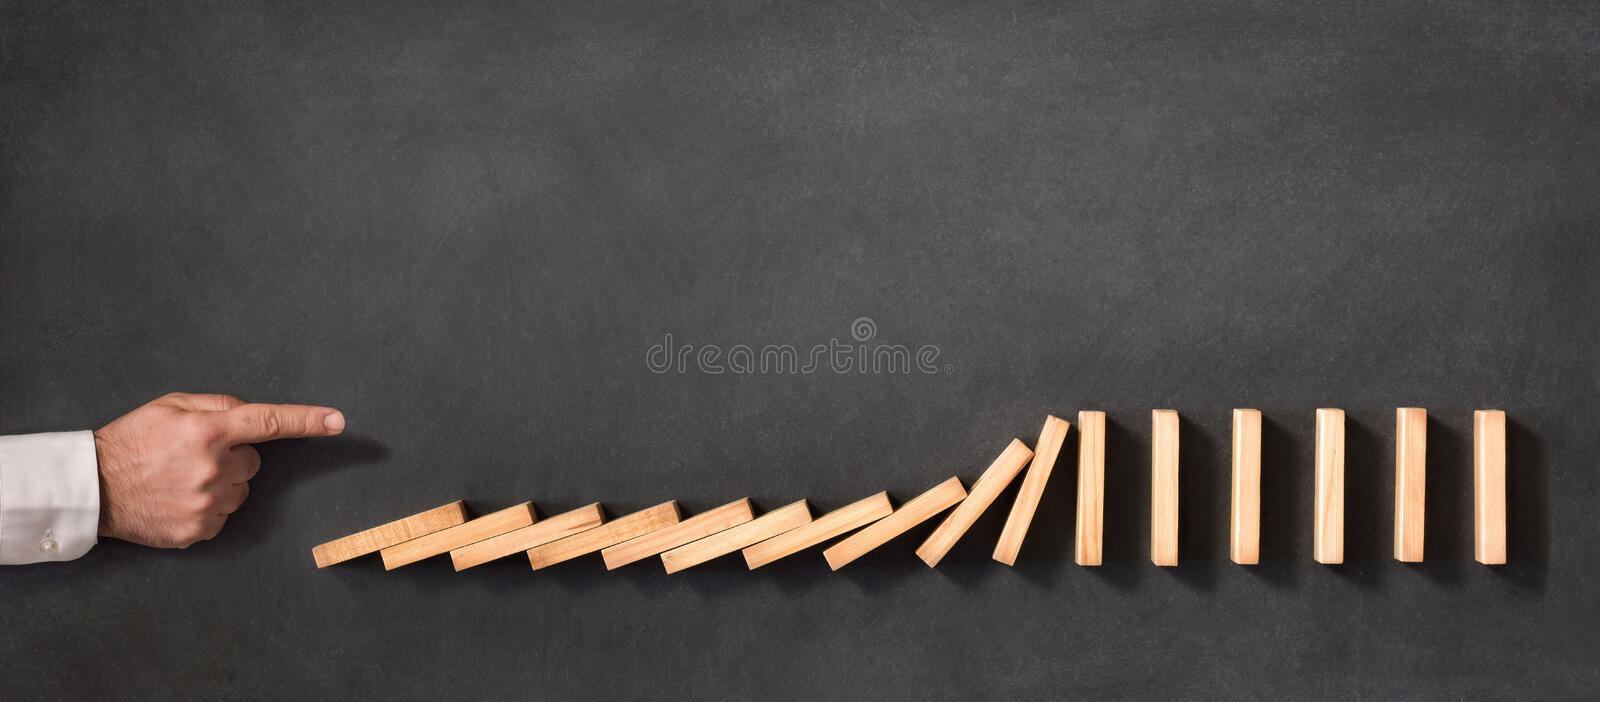 Domino Effect and Business Challenge Concept stock image